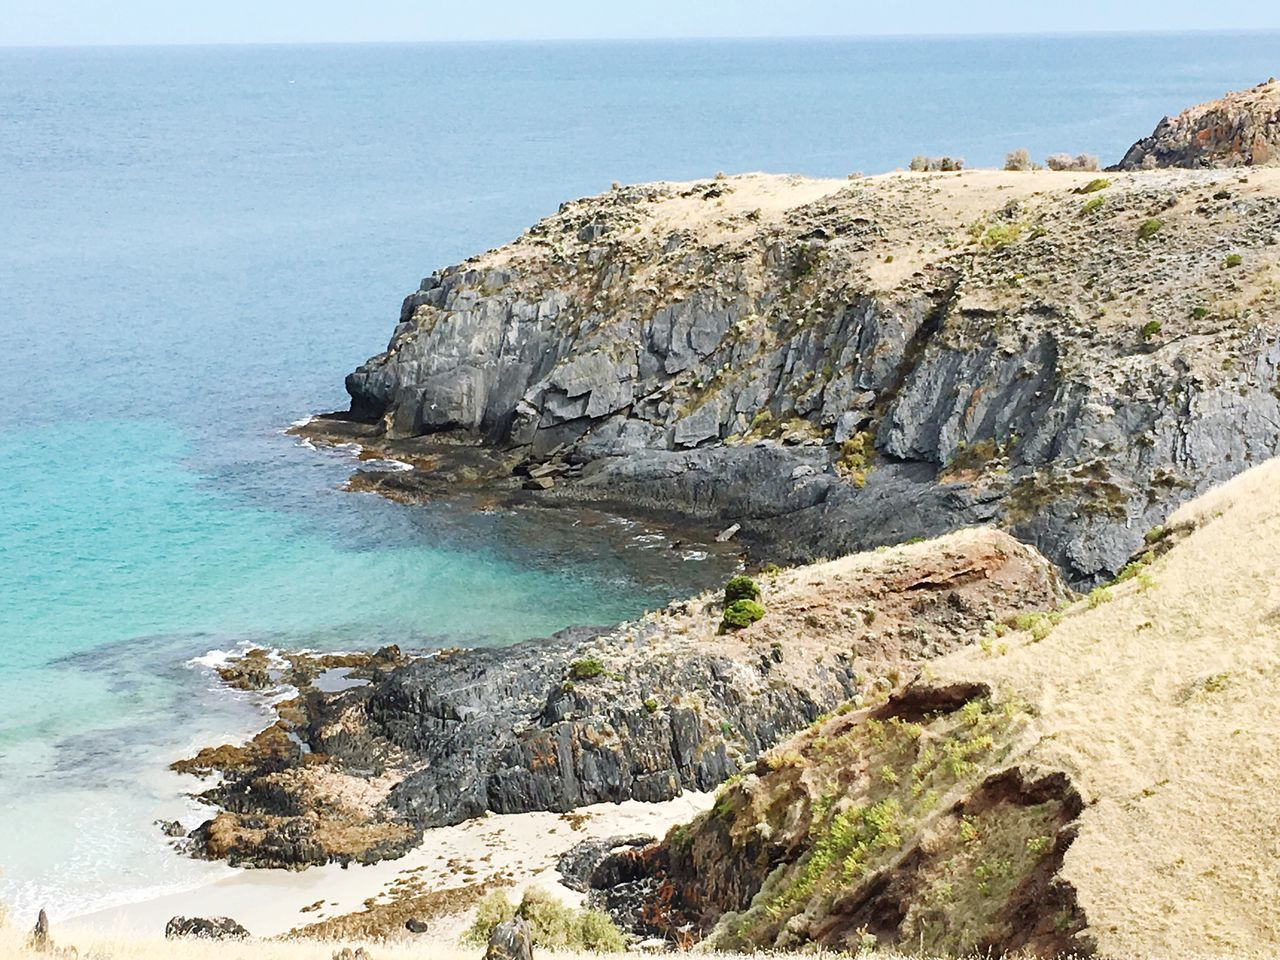 sea, rock - object, nature, rock formation, beauty in nature, scenics, water, tranquility, tranquil scene, rock, cliff, day, horizon over water, sunlight, no people, outdoors, physical geography, sky, blue, beach